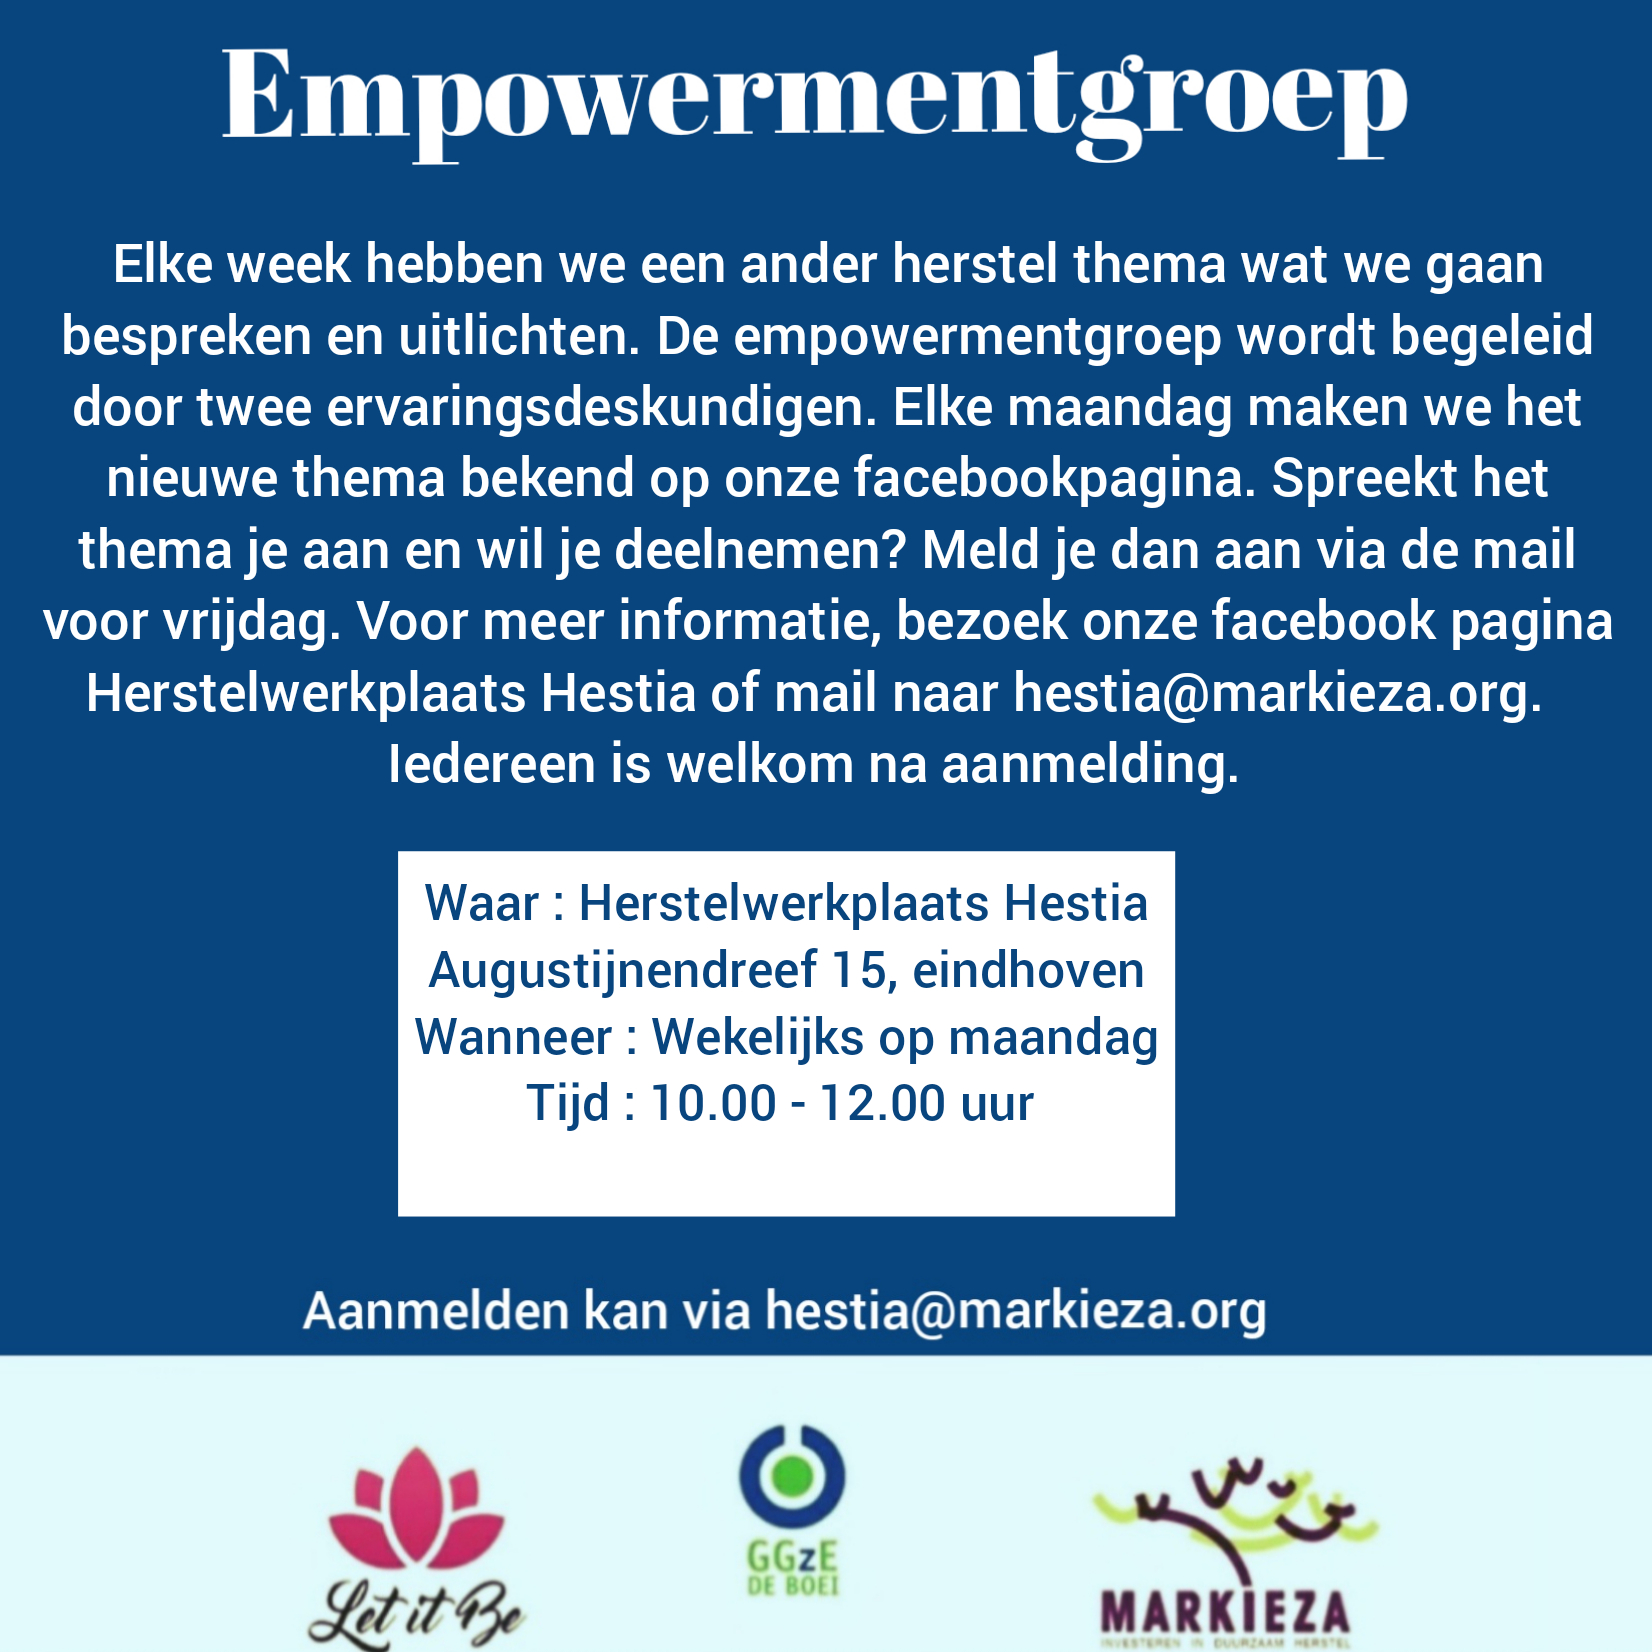 Empowermentgroep Let it Be Eindhoven